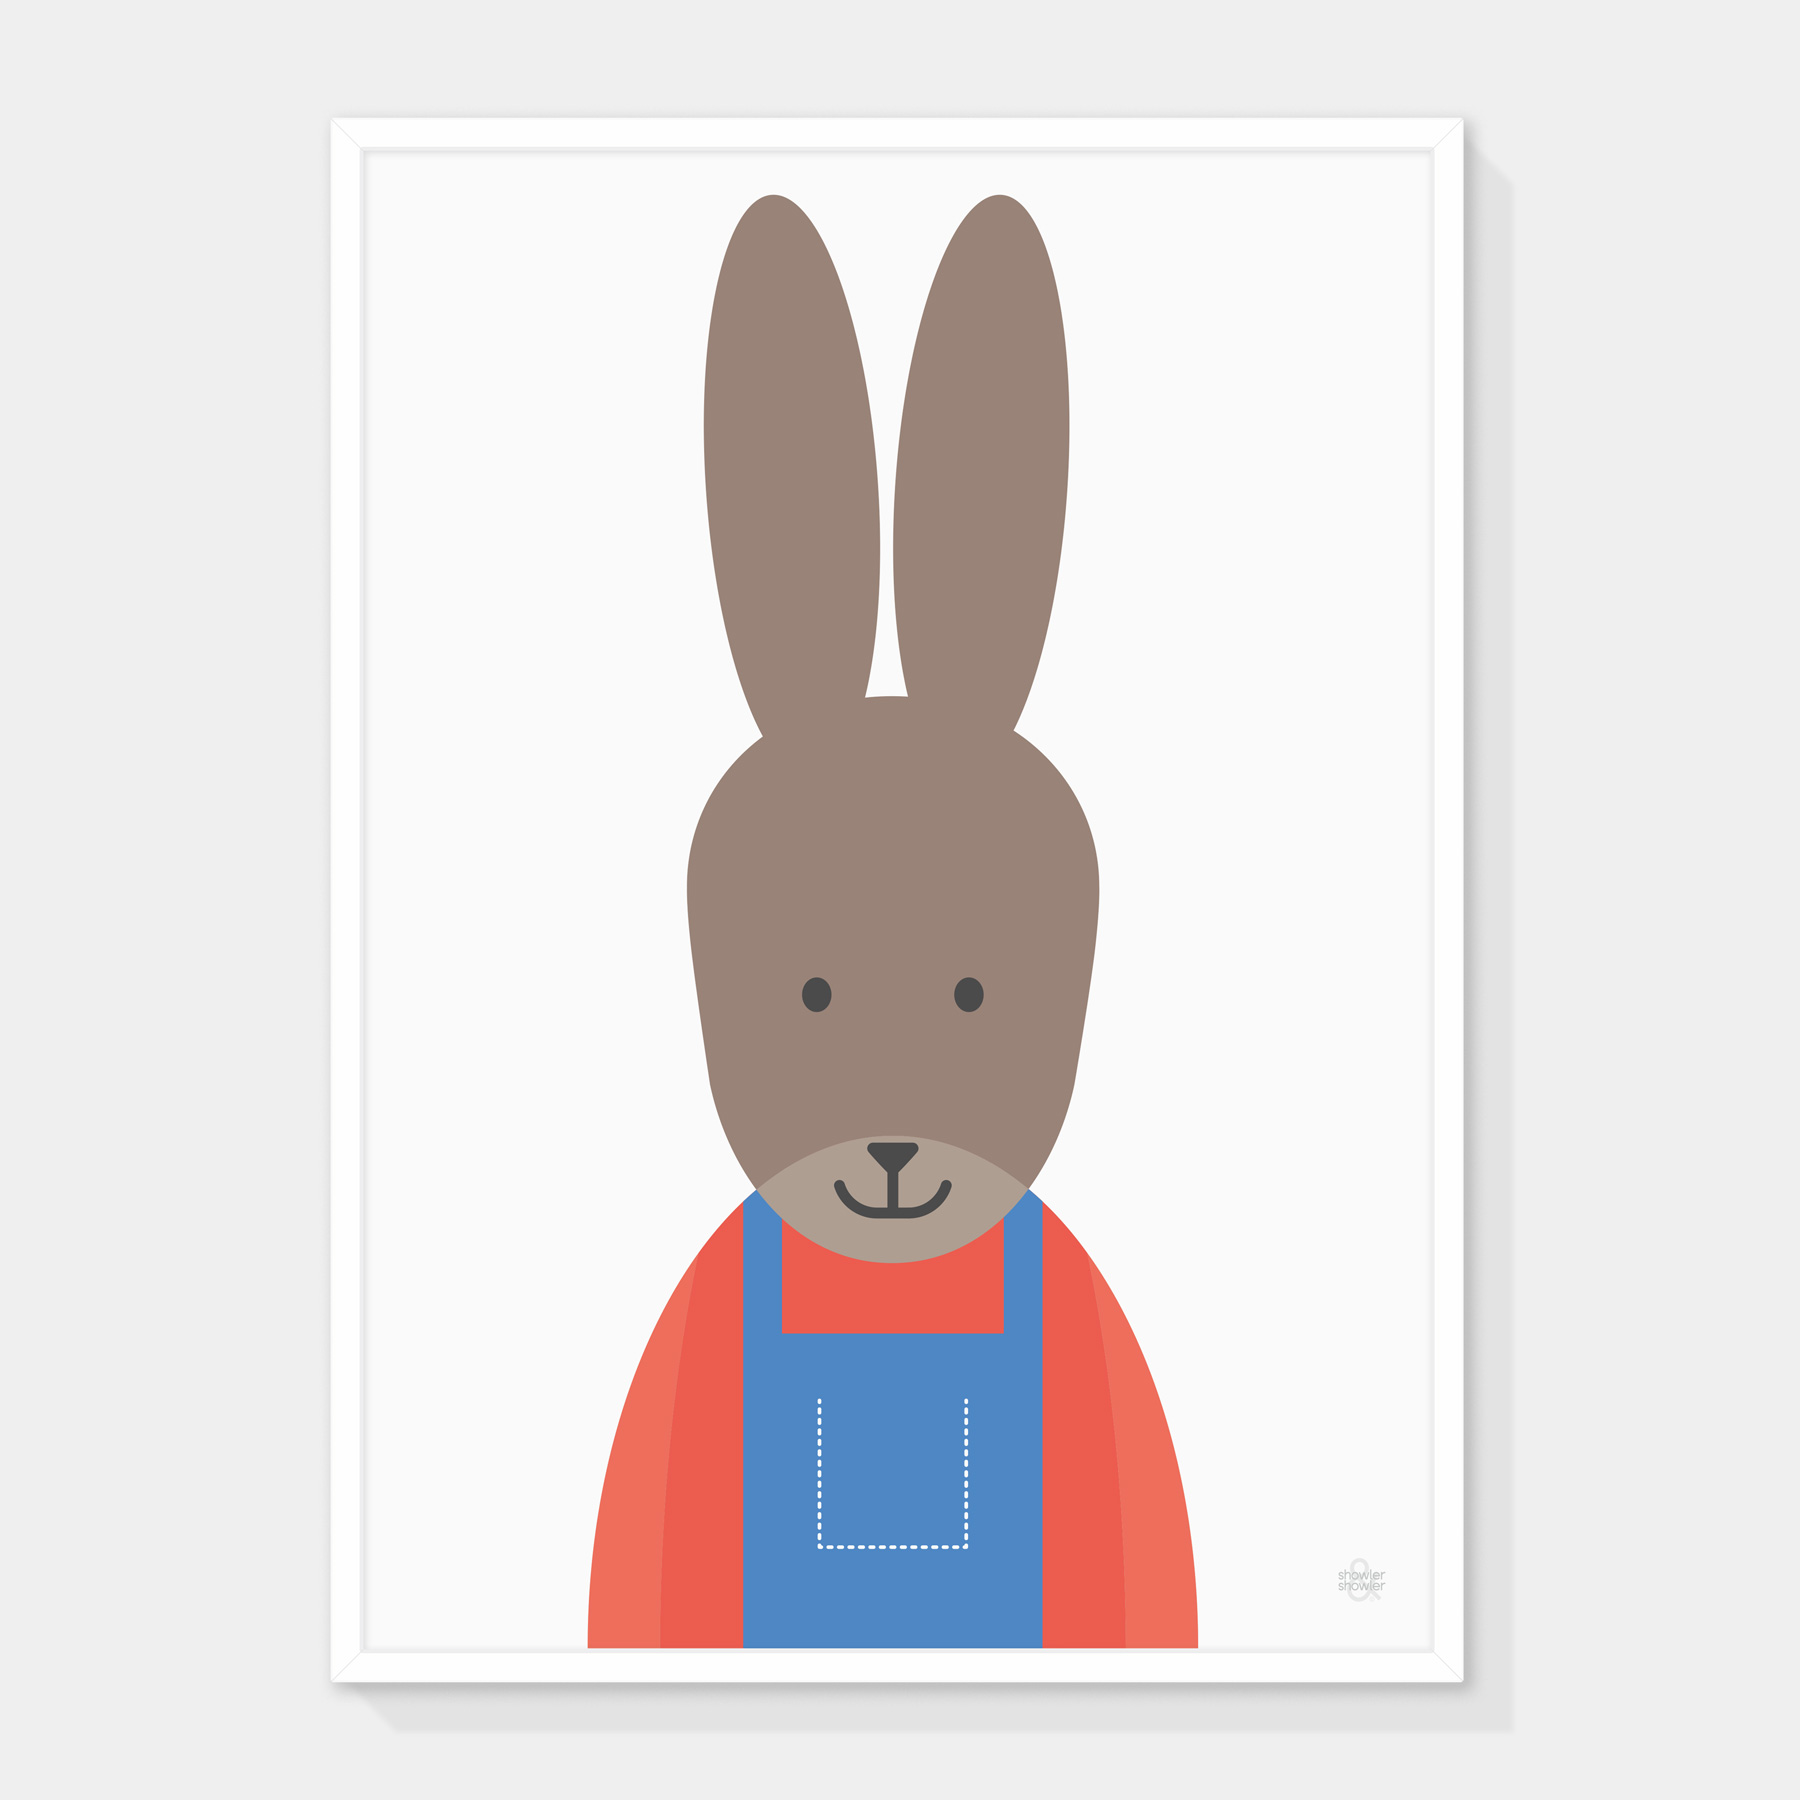 Rabbit-Print-Framed.jpg